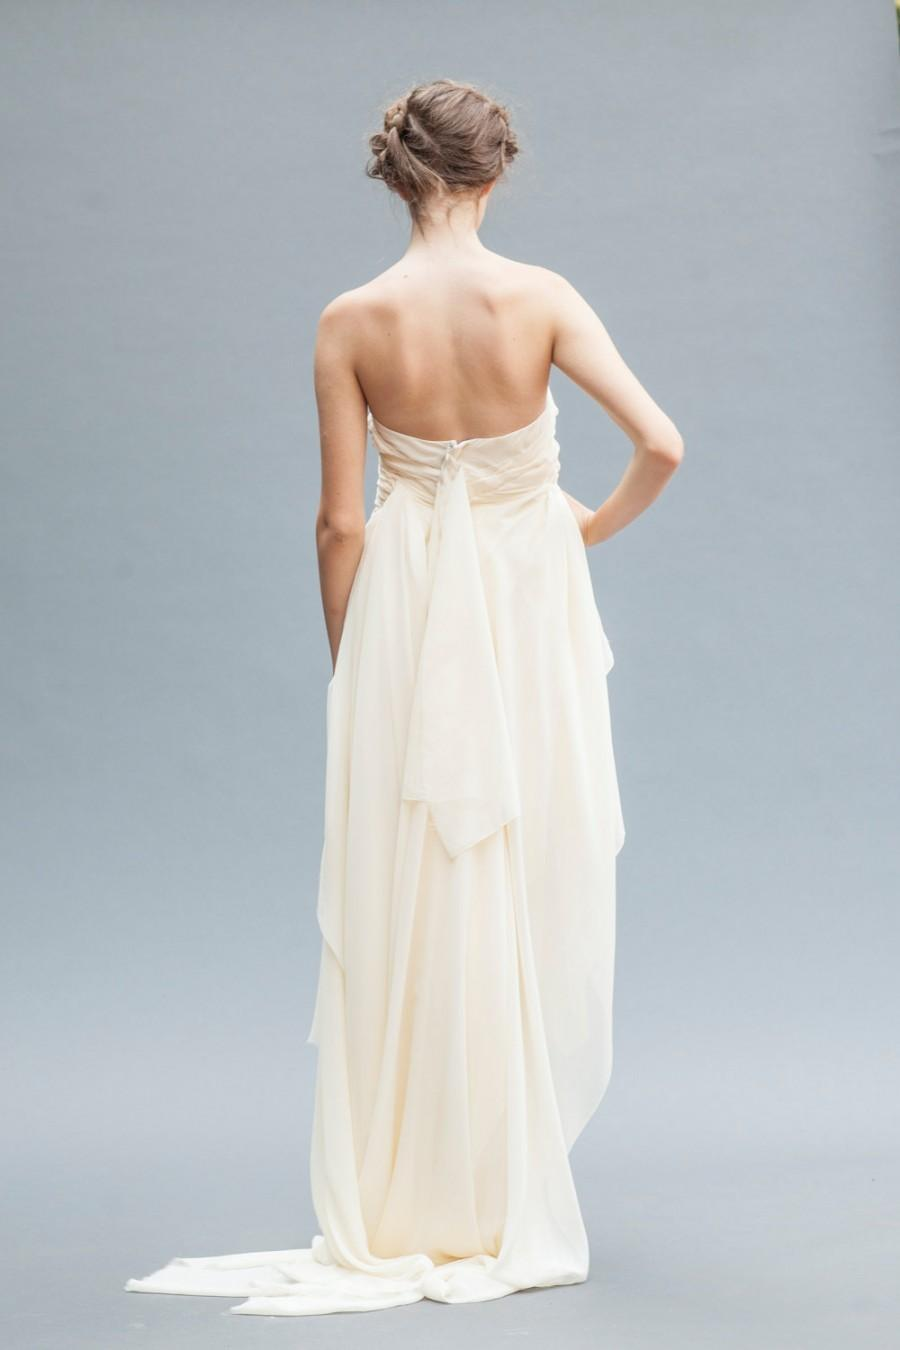 Wedding - Short Wedding Dress. This backless wedding gown features luxurious Grecian draping in silk chiffon, ending in a floor length ruffled train.